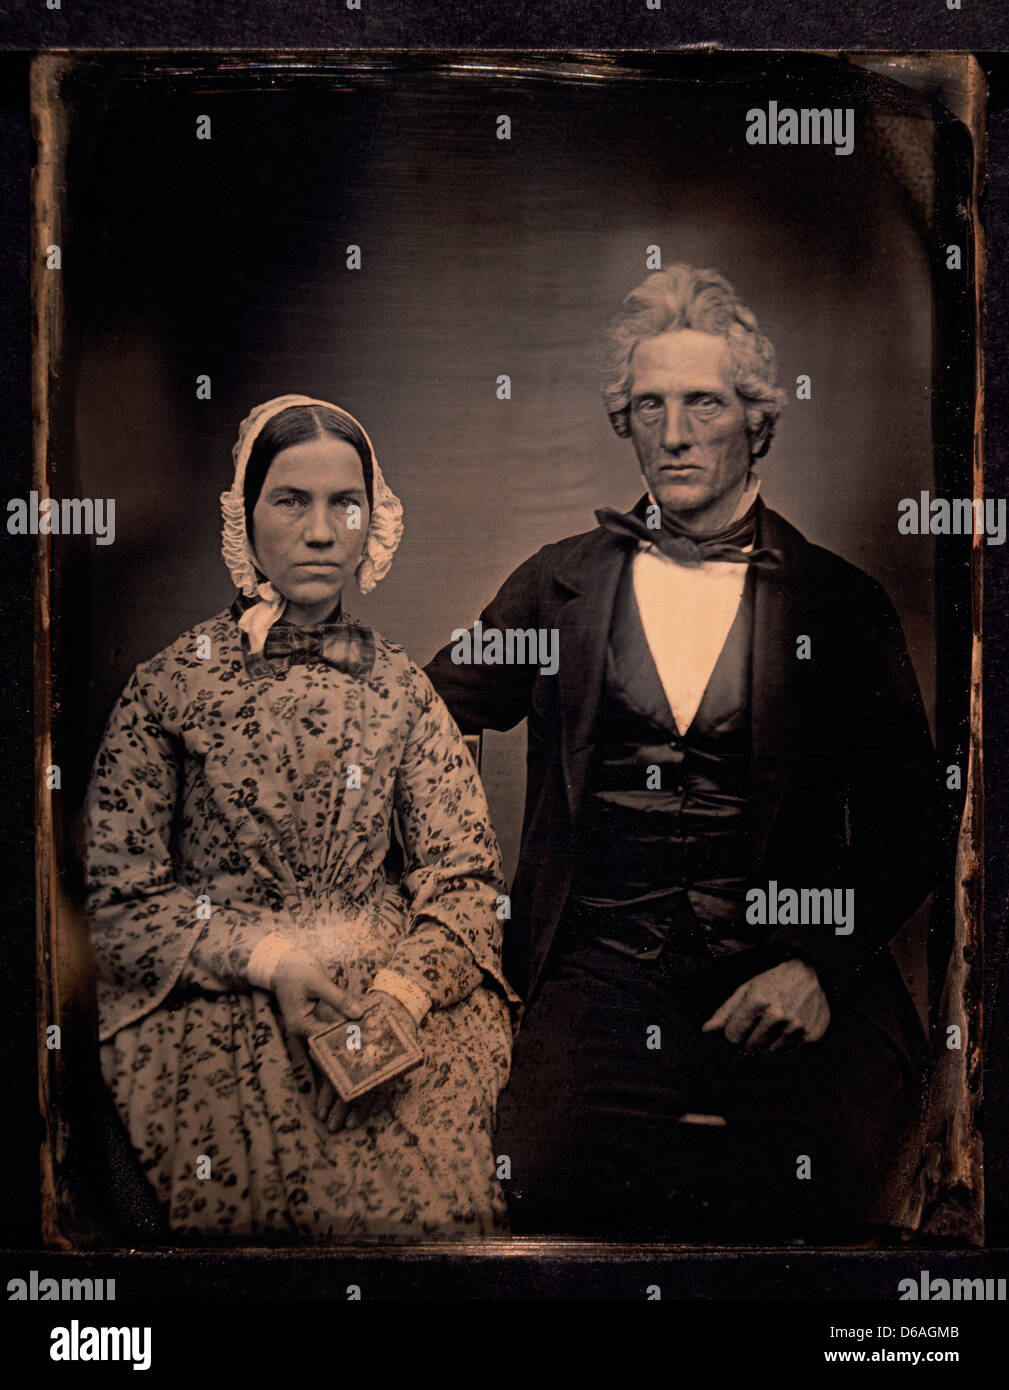 Couple Portrait, daguerréotype, vers 1850 Photo Stock